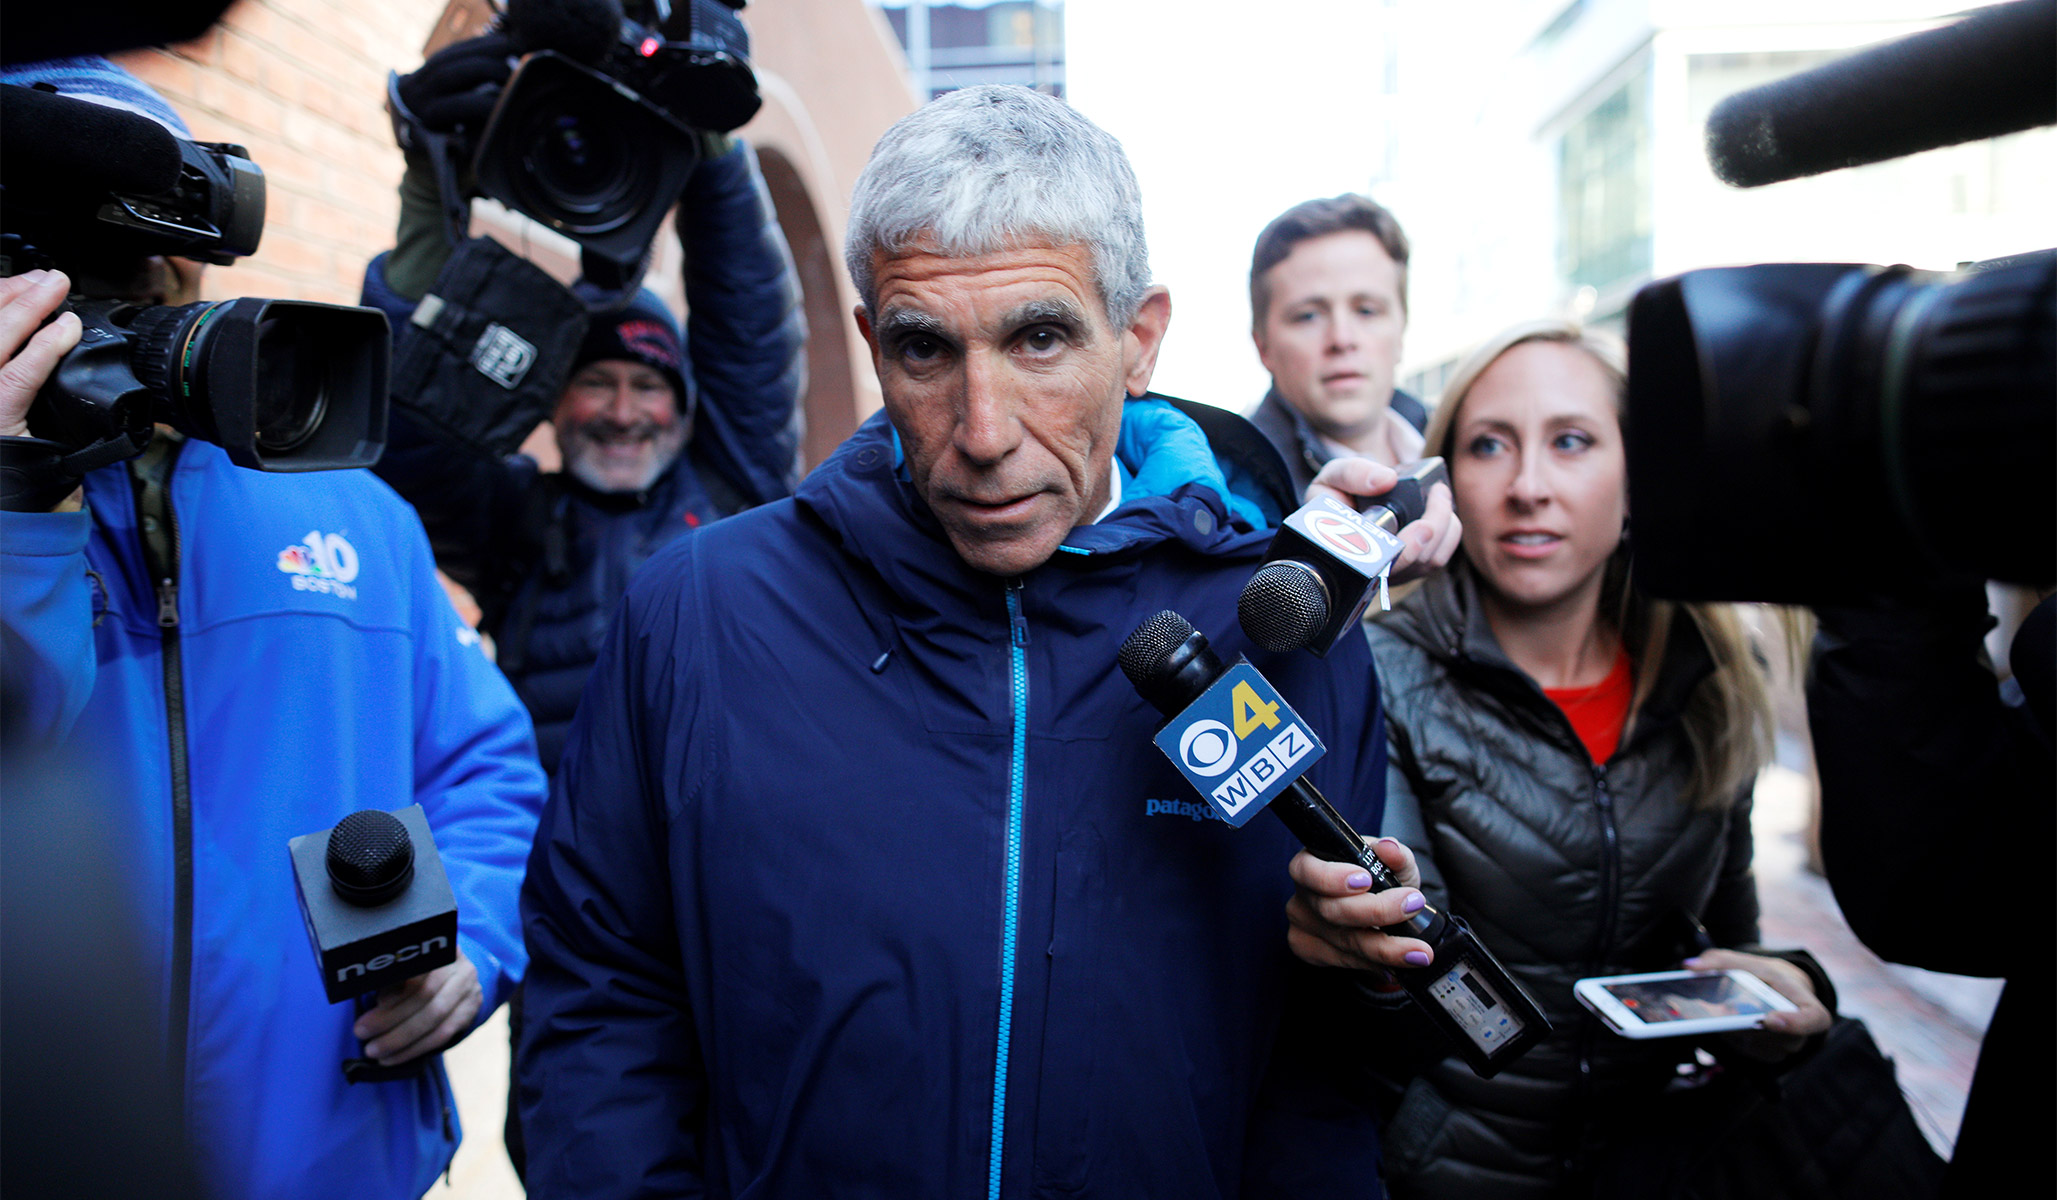 The College-Admissions Scandal Is Made for Our Populist Moment